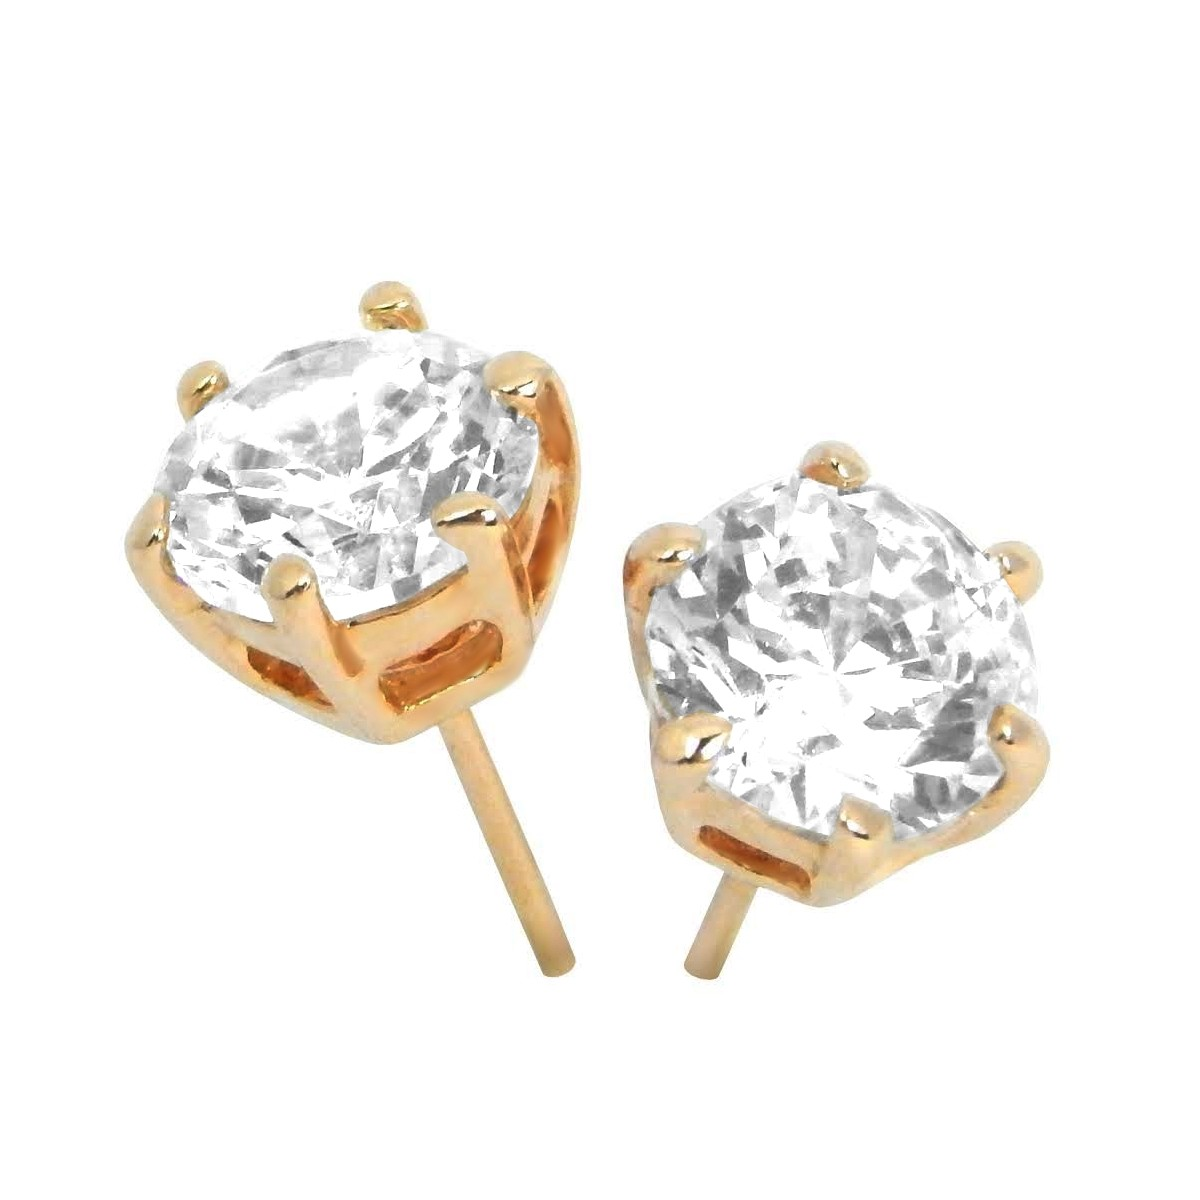 good and shape earring com on showroom kids at fashion suppliers clip alibaba quality earrings manufacturers animal holder